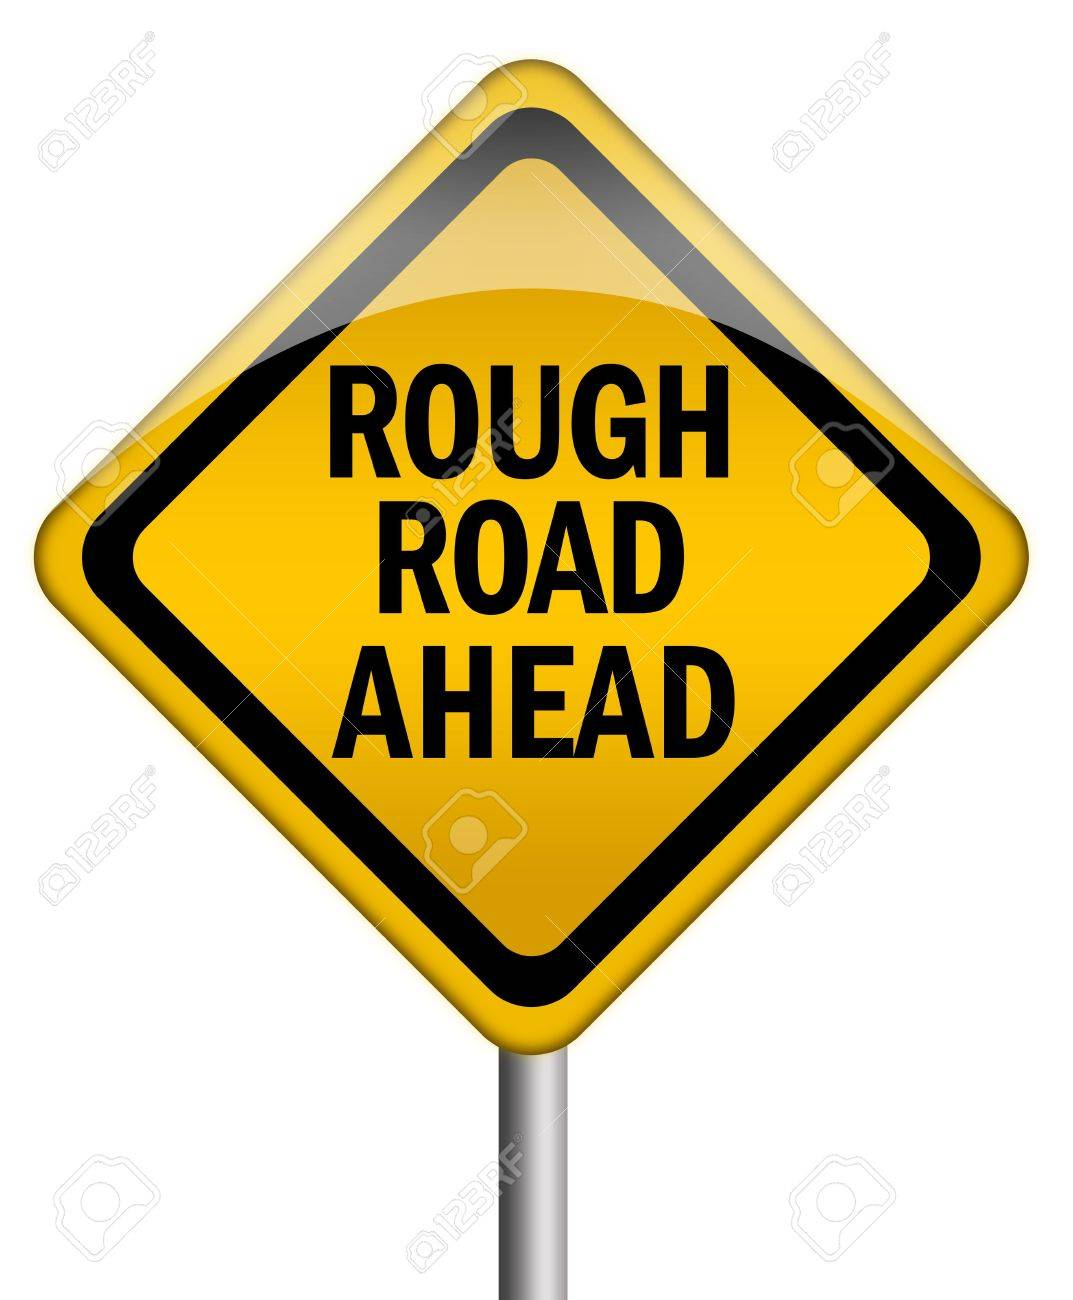 Rough road ahead sign Stock Photo - 7426711